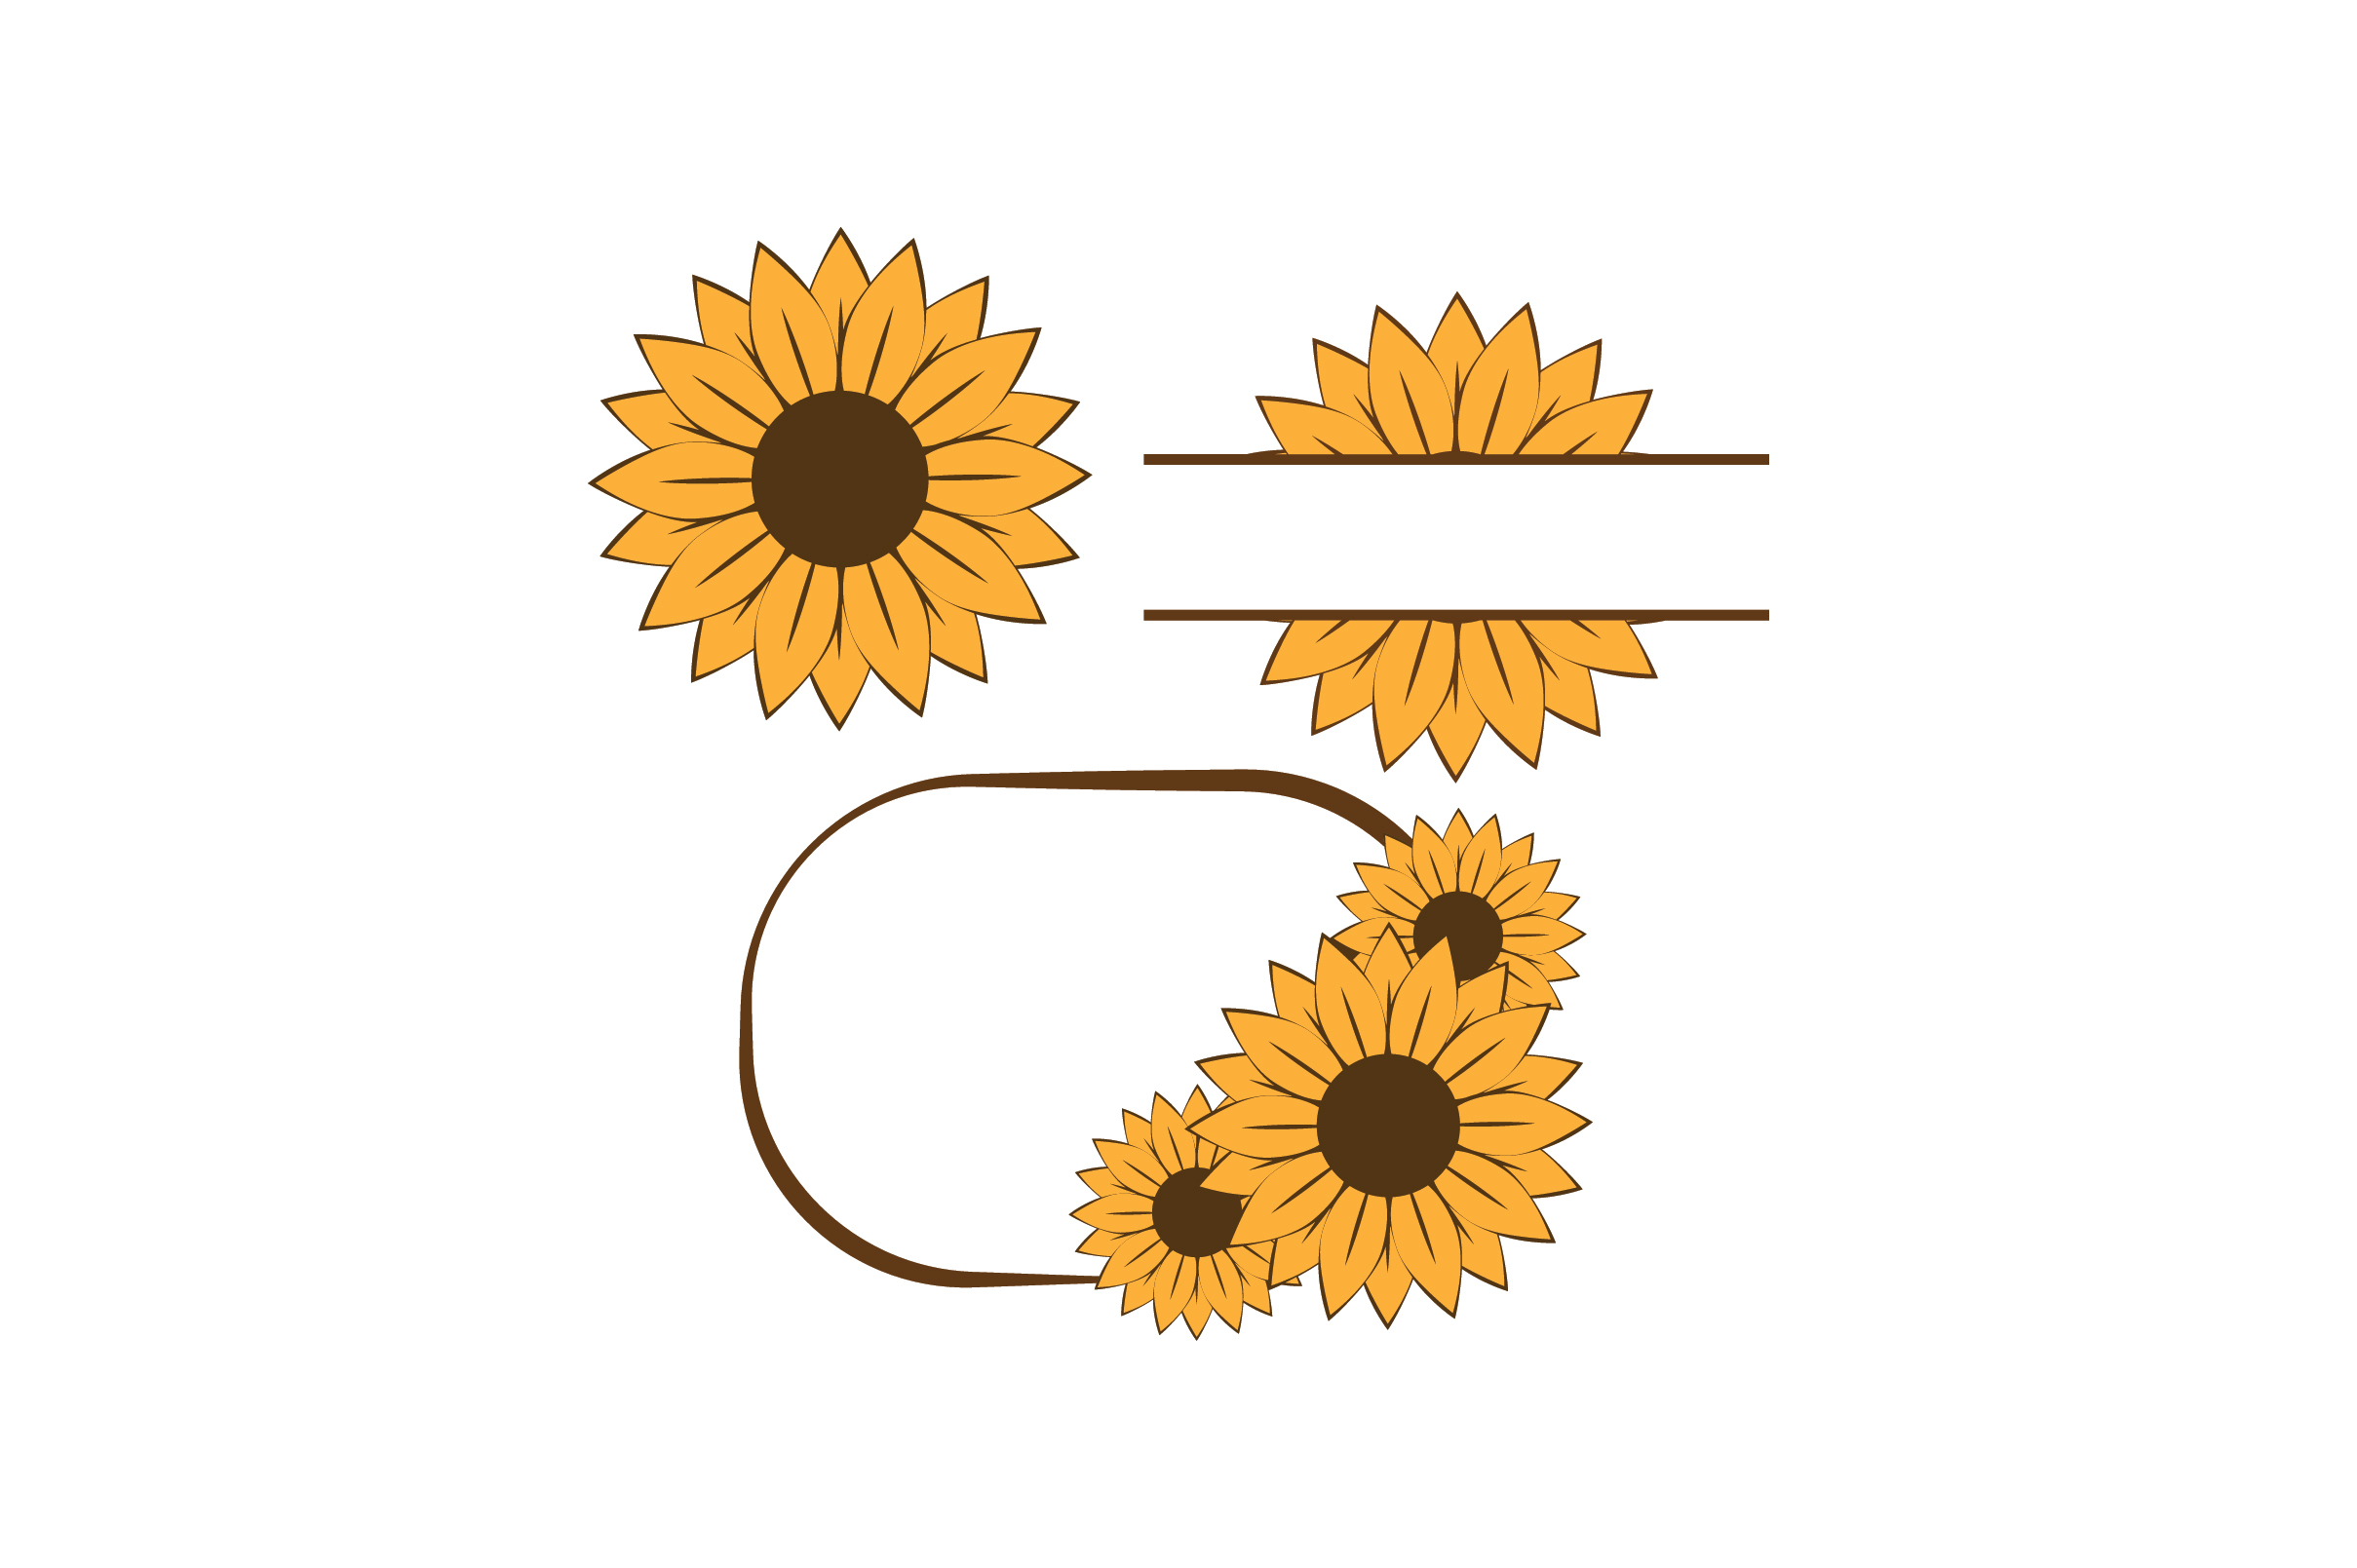 Download Free Sunflower Wreath Graphic By Fauzidea Creative Fabrica for Cricut Explore, Silhouette and other cutting machines.